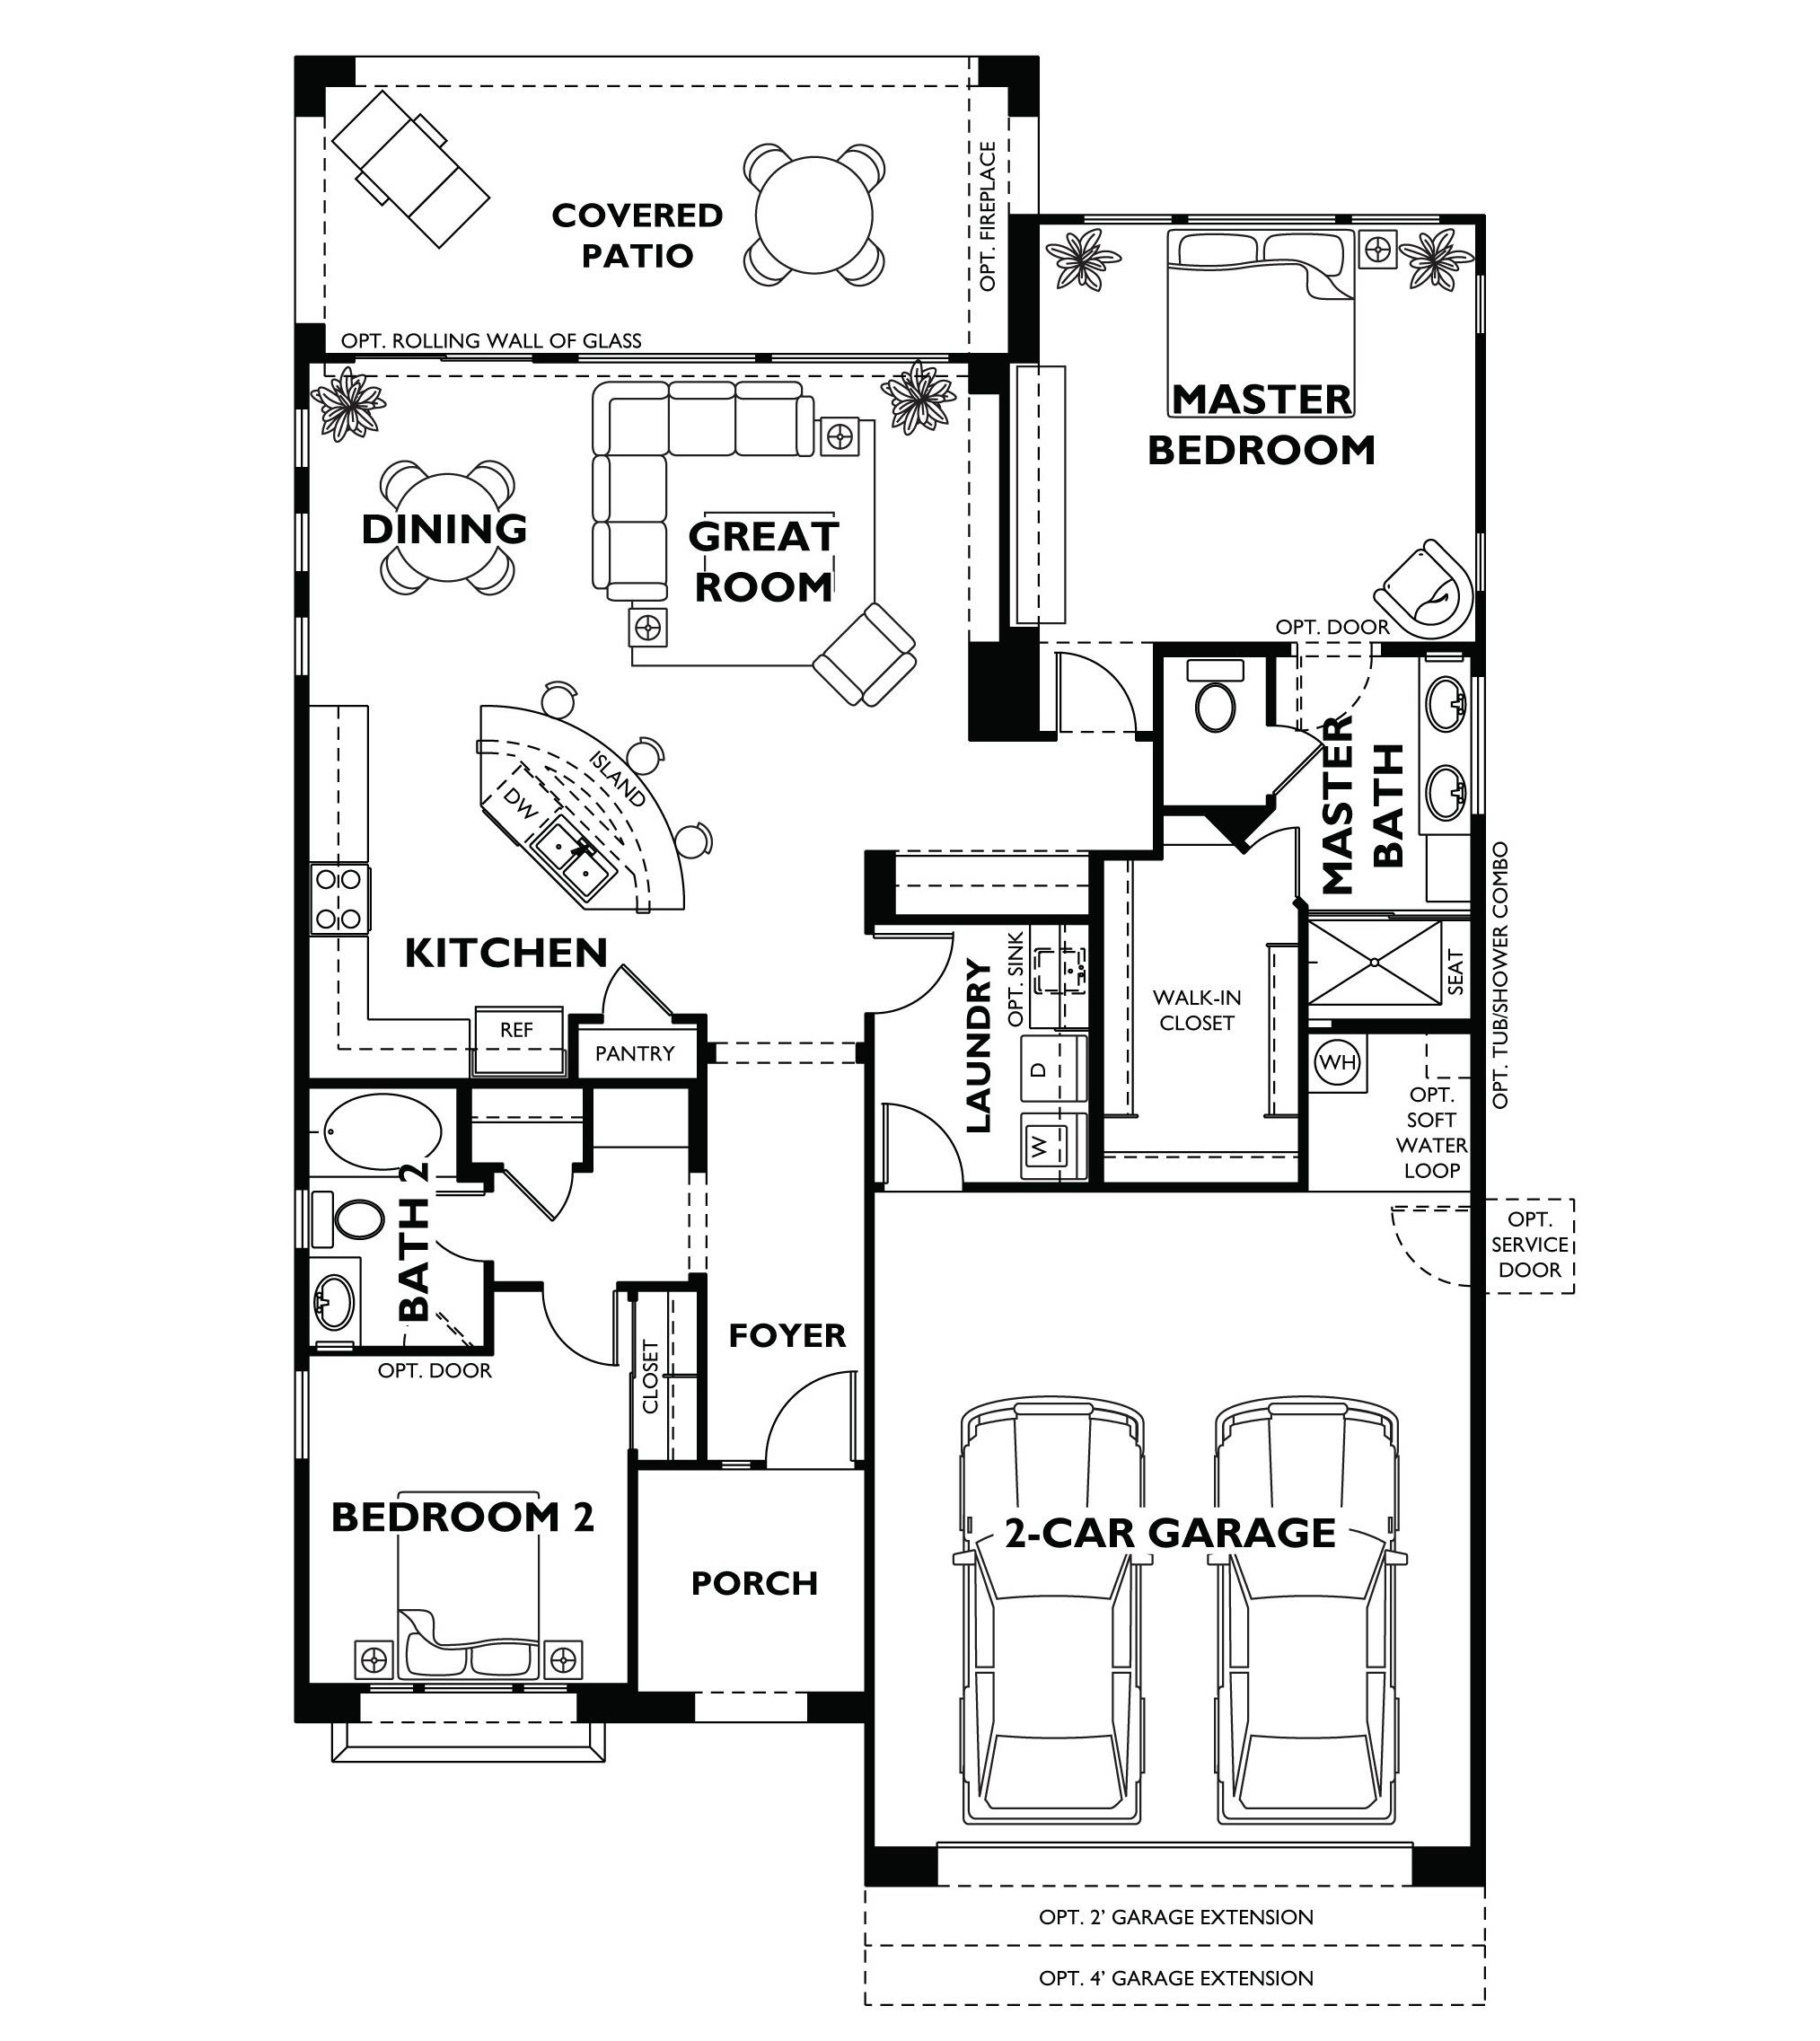 Model house plans Home design and layout